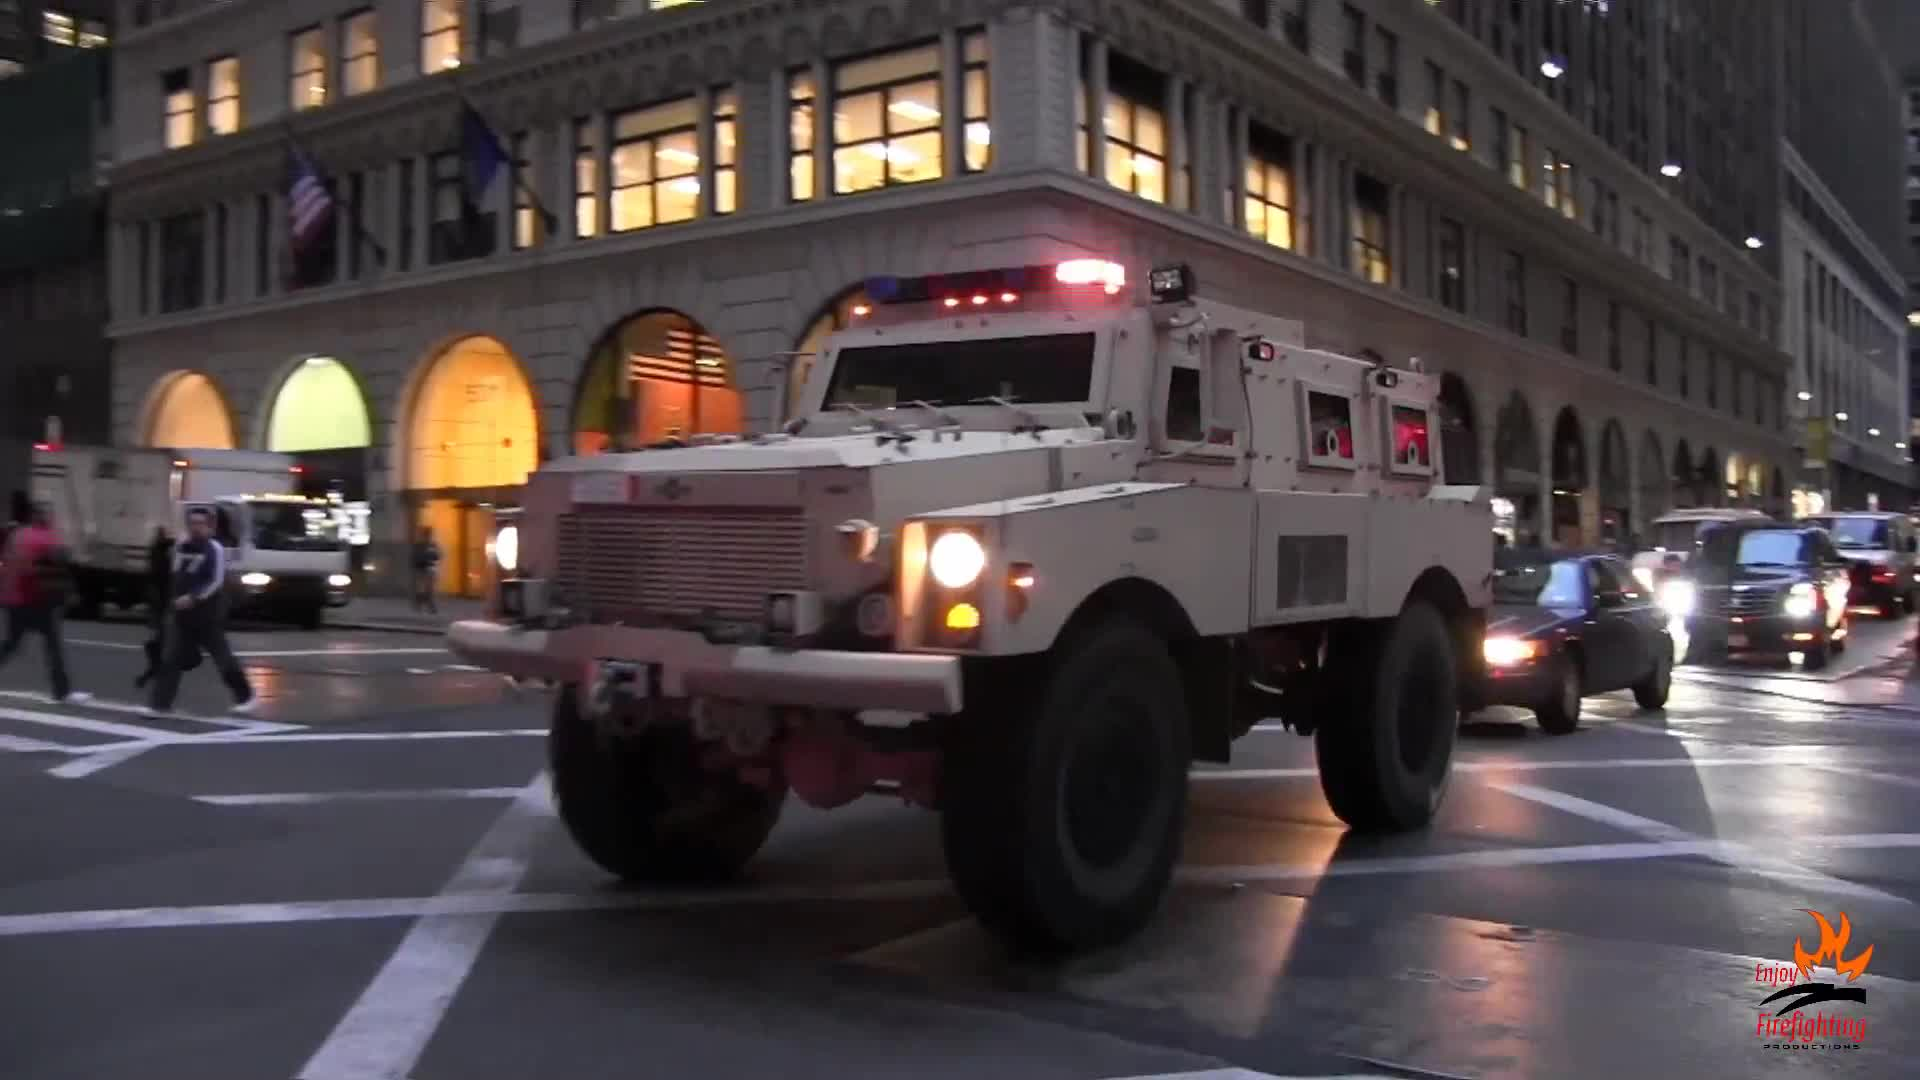 Heavy Armored SWAT Truck FBI + 2x Unmarked Car (collection)